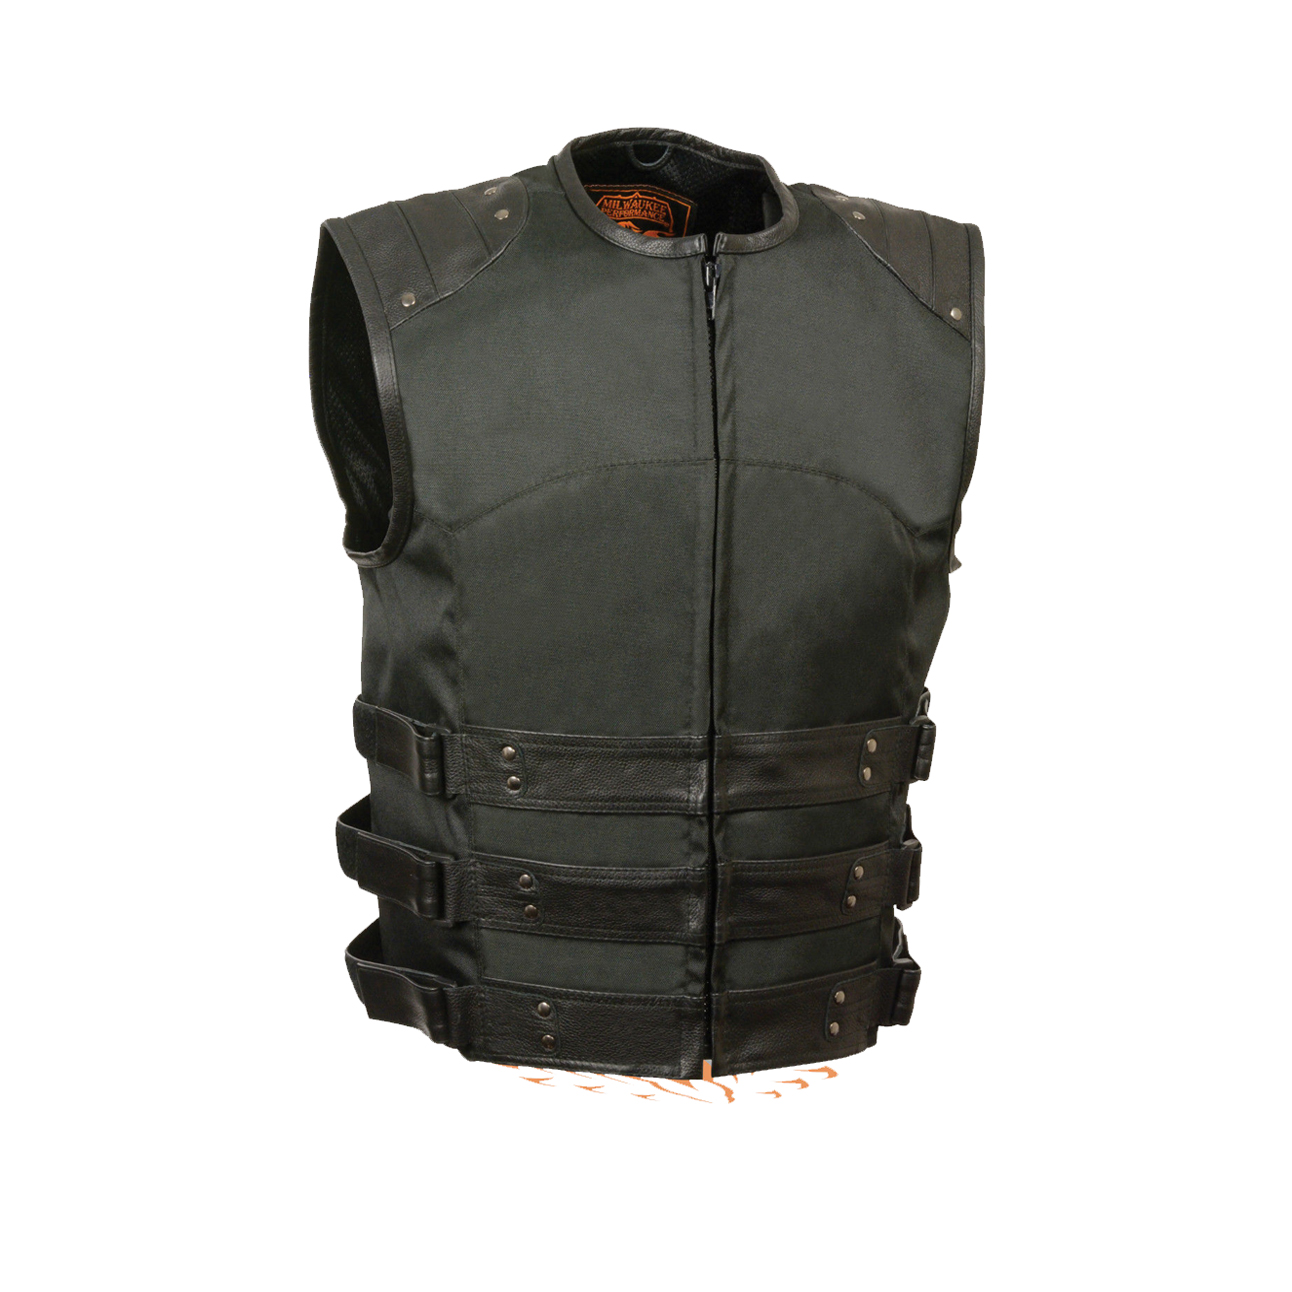 Military style motorcycle jacket